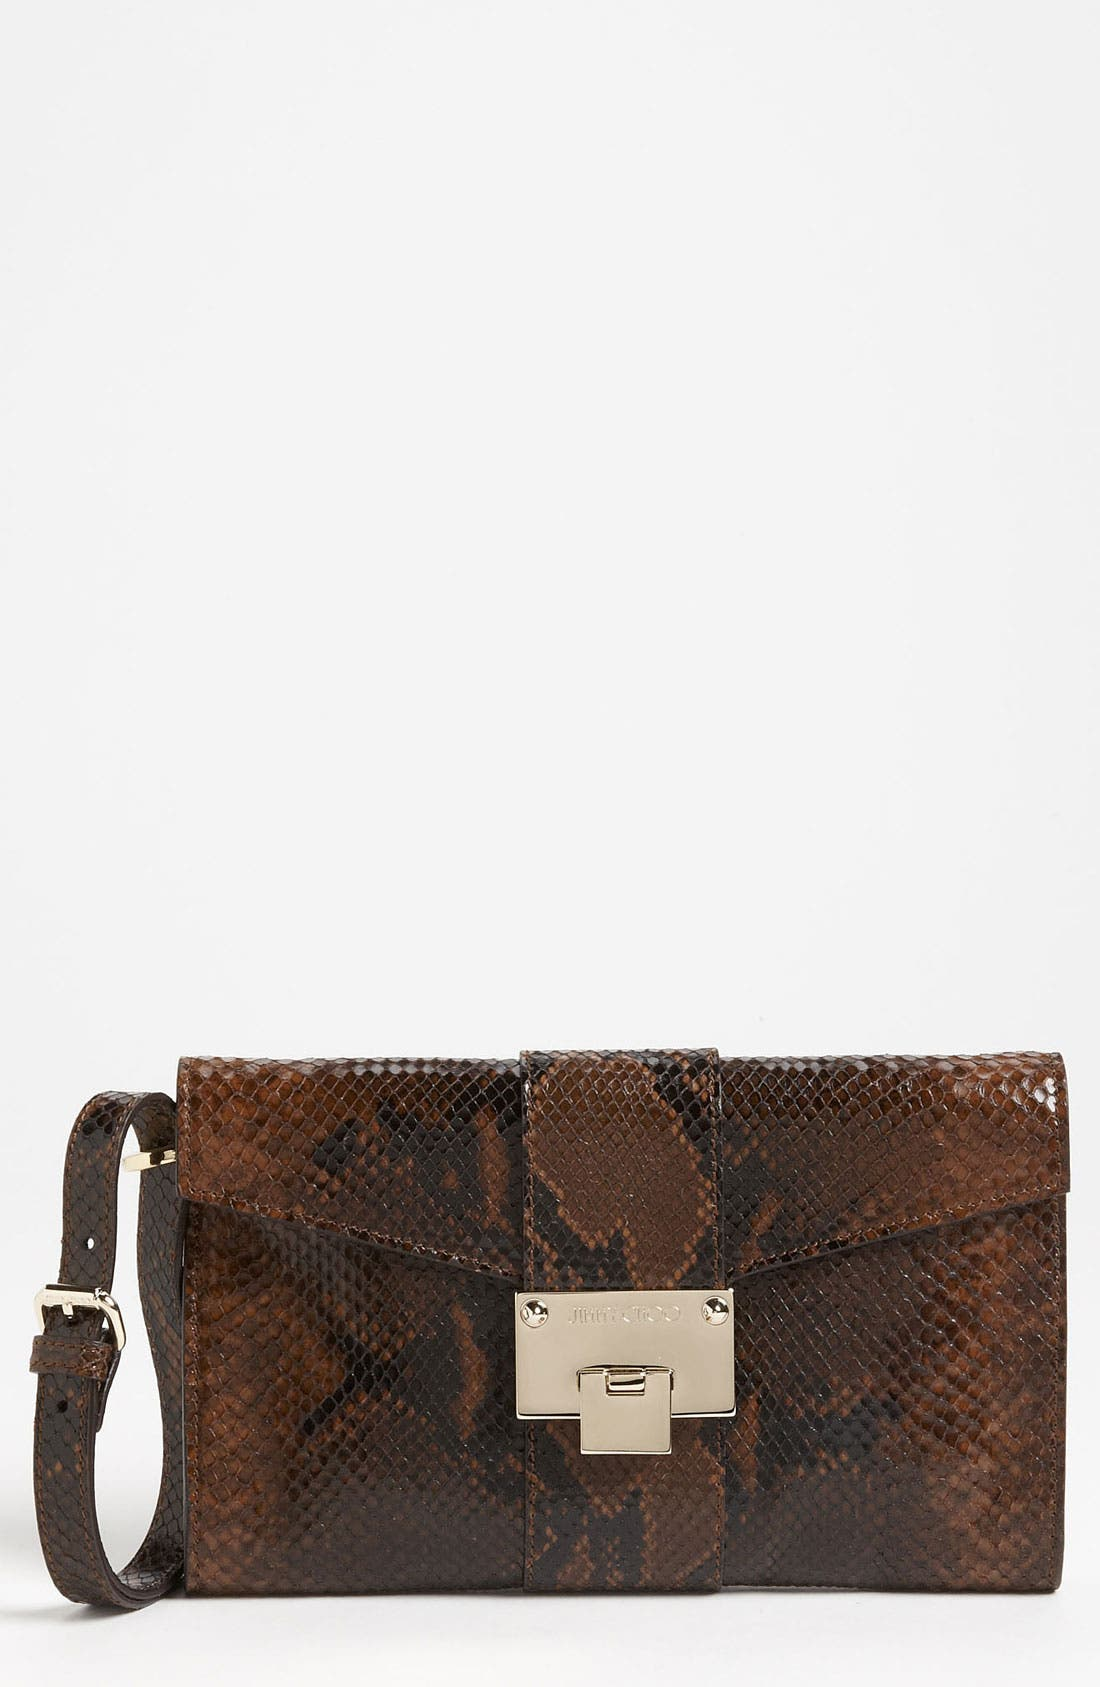 Main Image - Jimmy Choo 'Rivera - Small' Leather Clutch